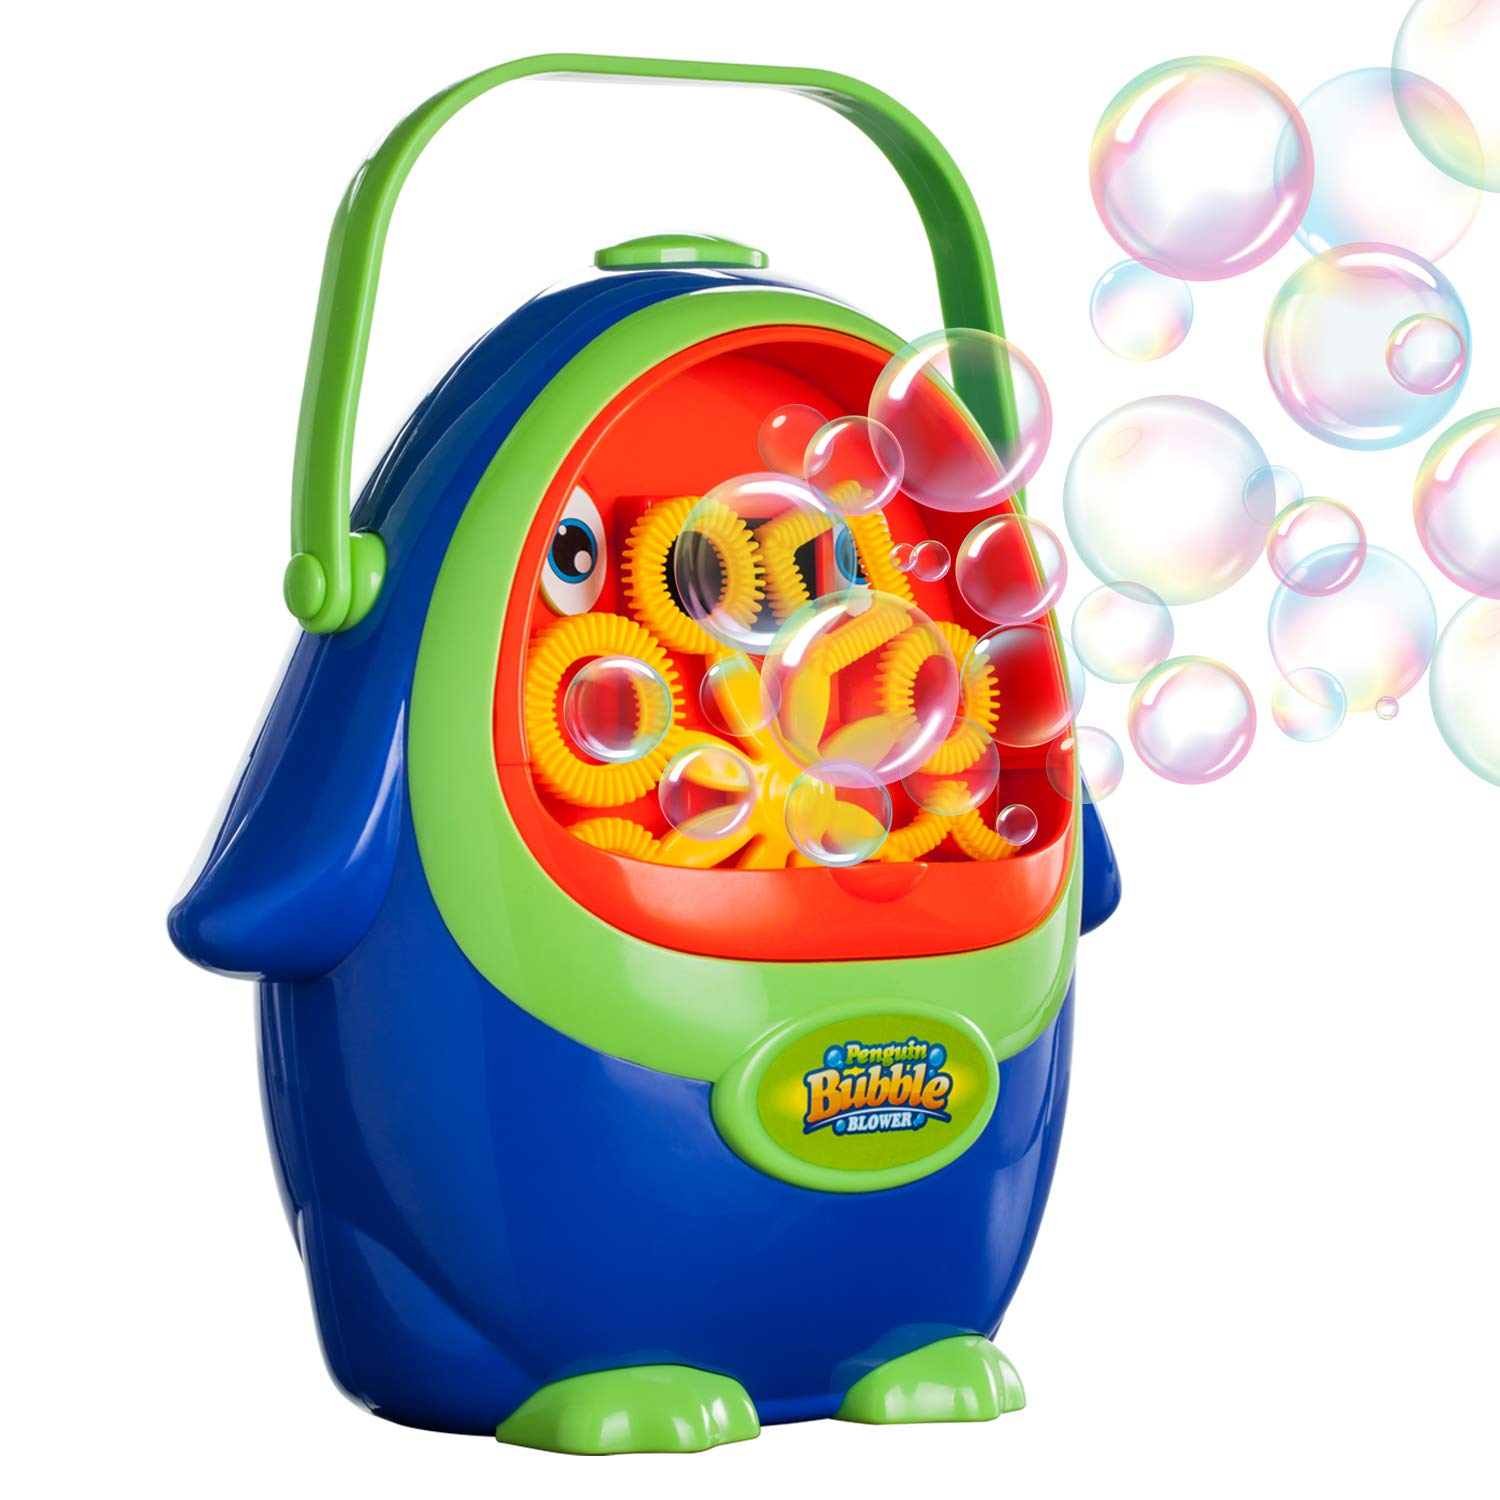 Vtopmart Automatic Bubble Blower Machine with Bubble Solution for Kids Toddlers, Penguin Bubble Maker for Party, Wedding, Outdoor Indoor Games, Battery Operated (Not Included)